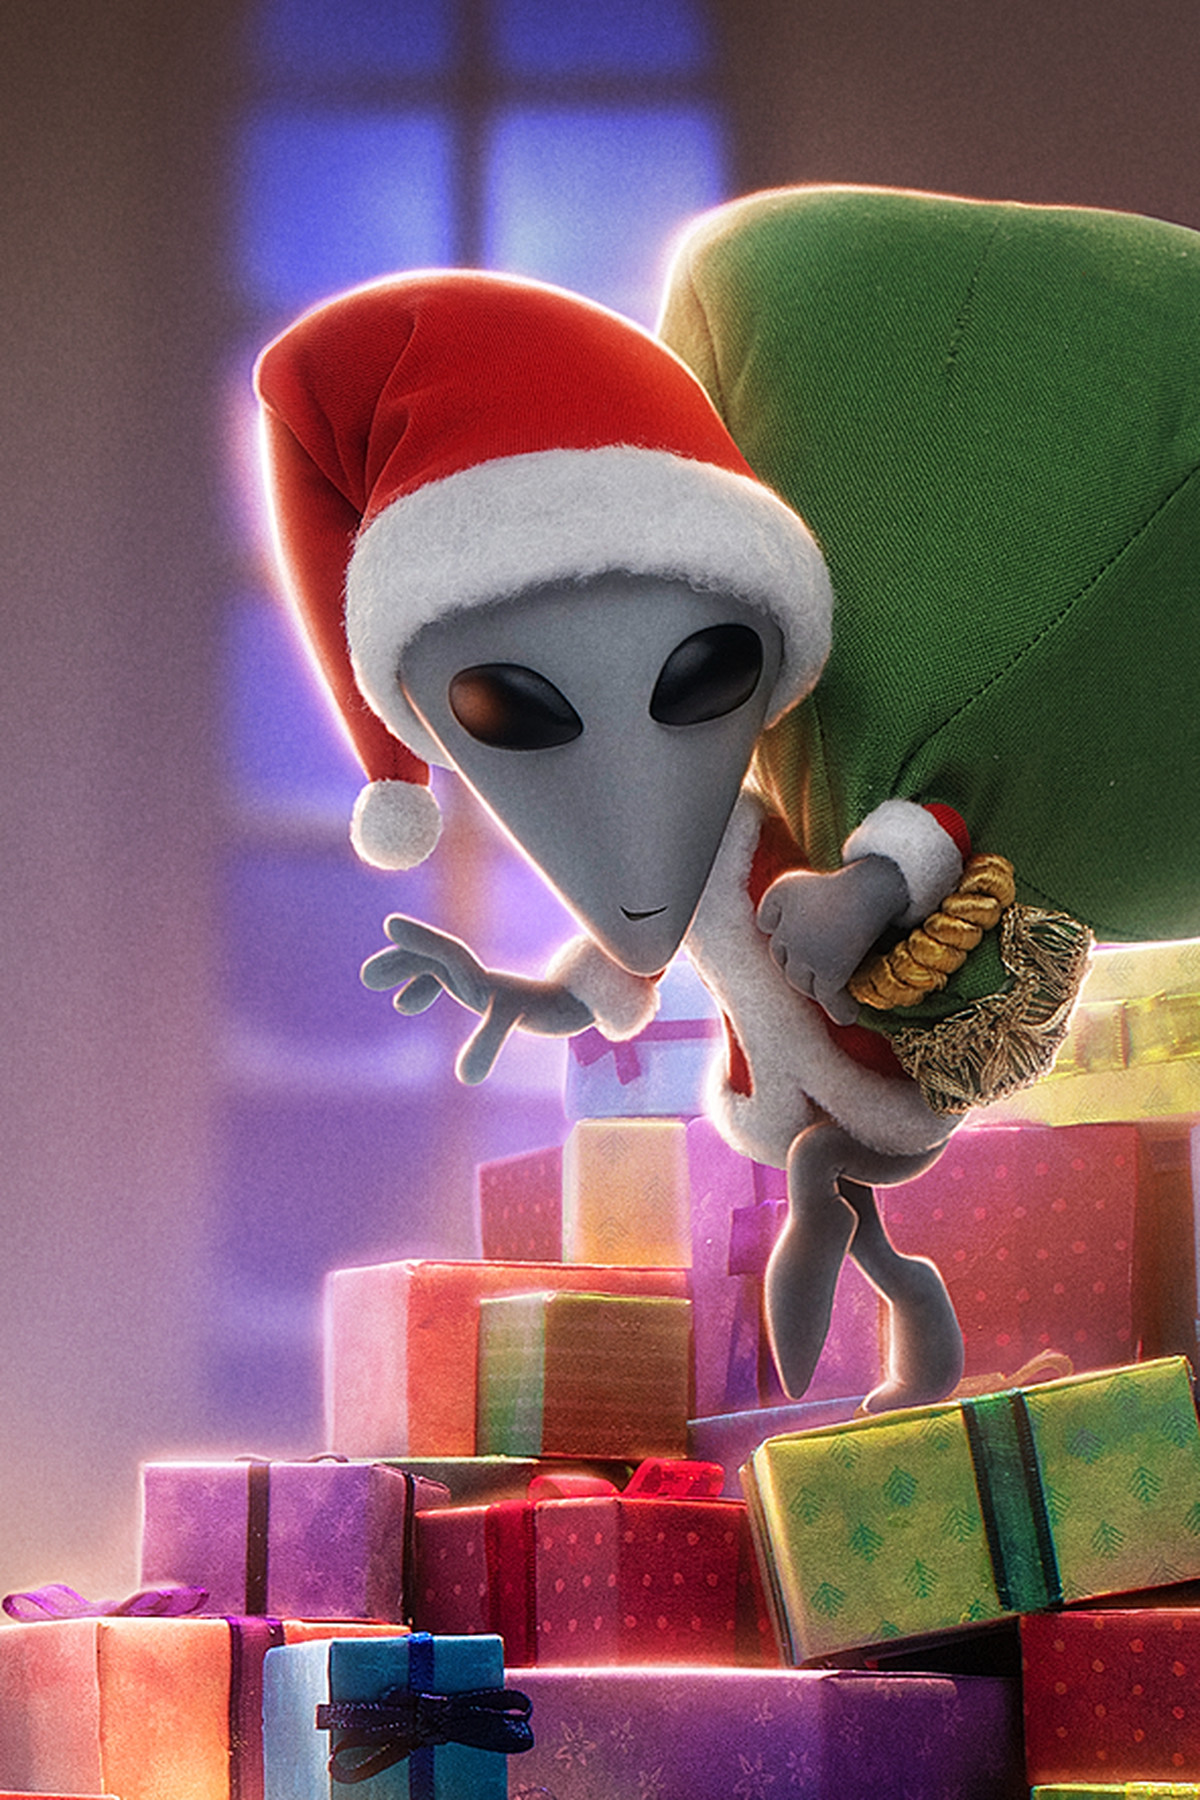 The little grey alien X, dressed as Santa Claus, sneaks down a colorful pile of presents in Alien Xmas